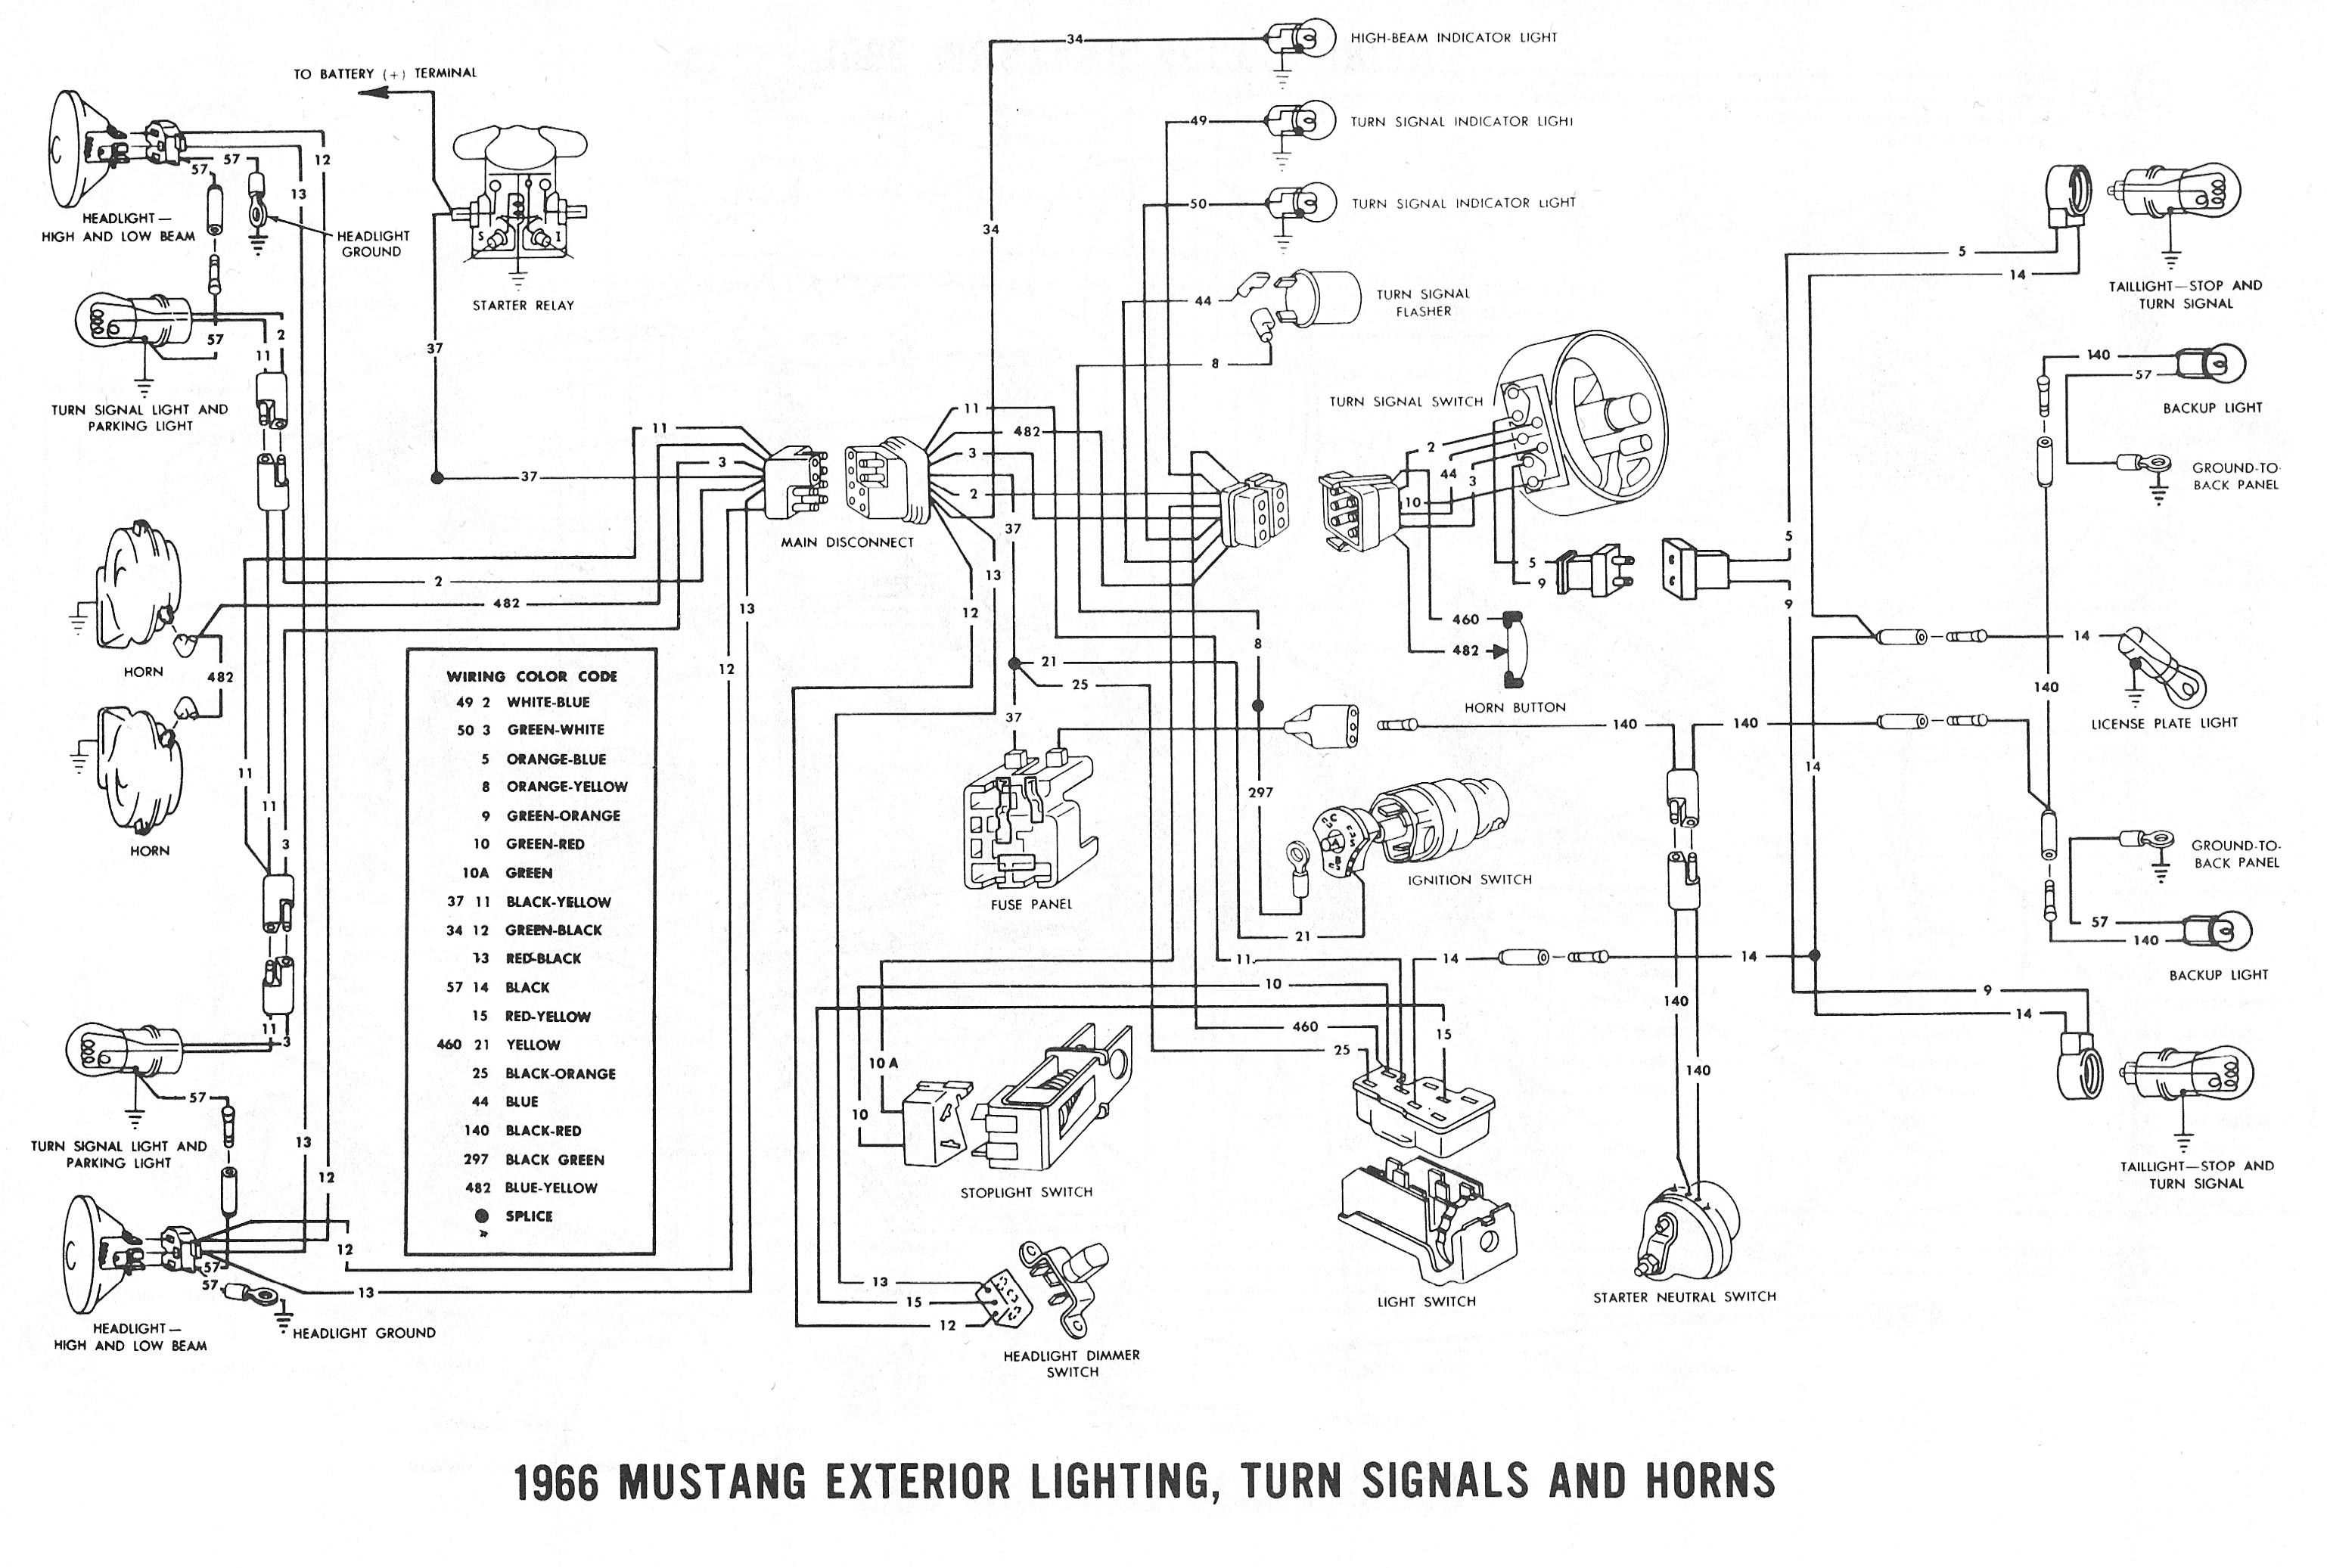 1966 Ford F100 Wiring Diagram Archive Of Automotive Sunnybrook Rv Diagrams Schematic Simple Rh David Huggett Co Uk